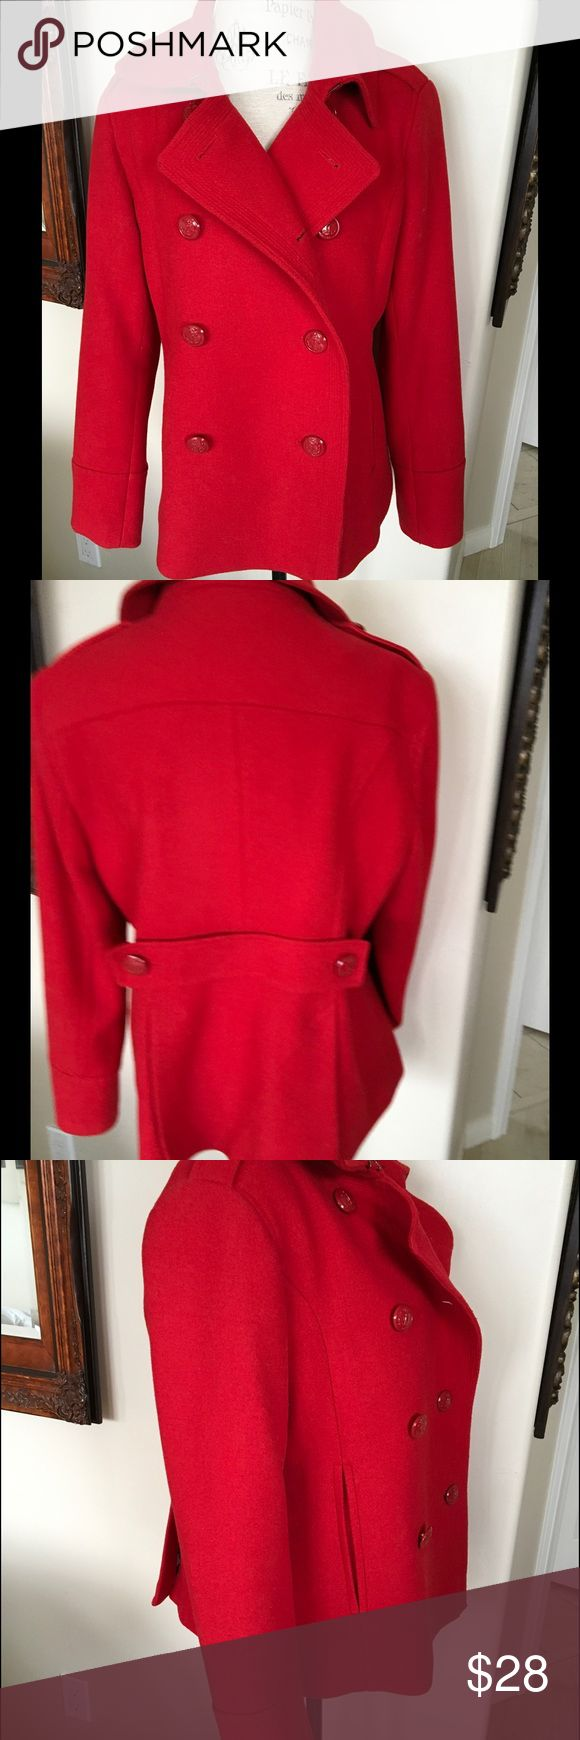 RED PEA COAT Like new JCP pea coat.True to size. Fits 10/12 jcpenney Jackets & Coats Pea Coats